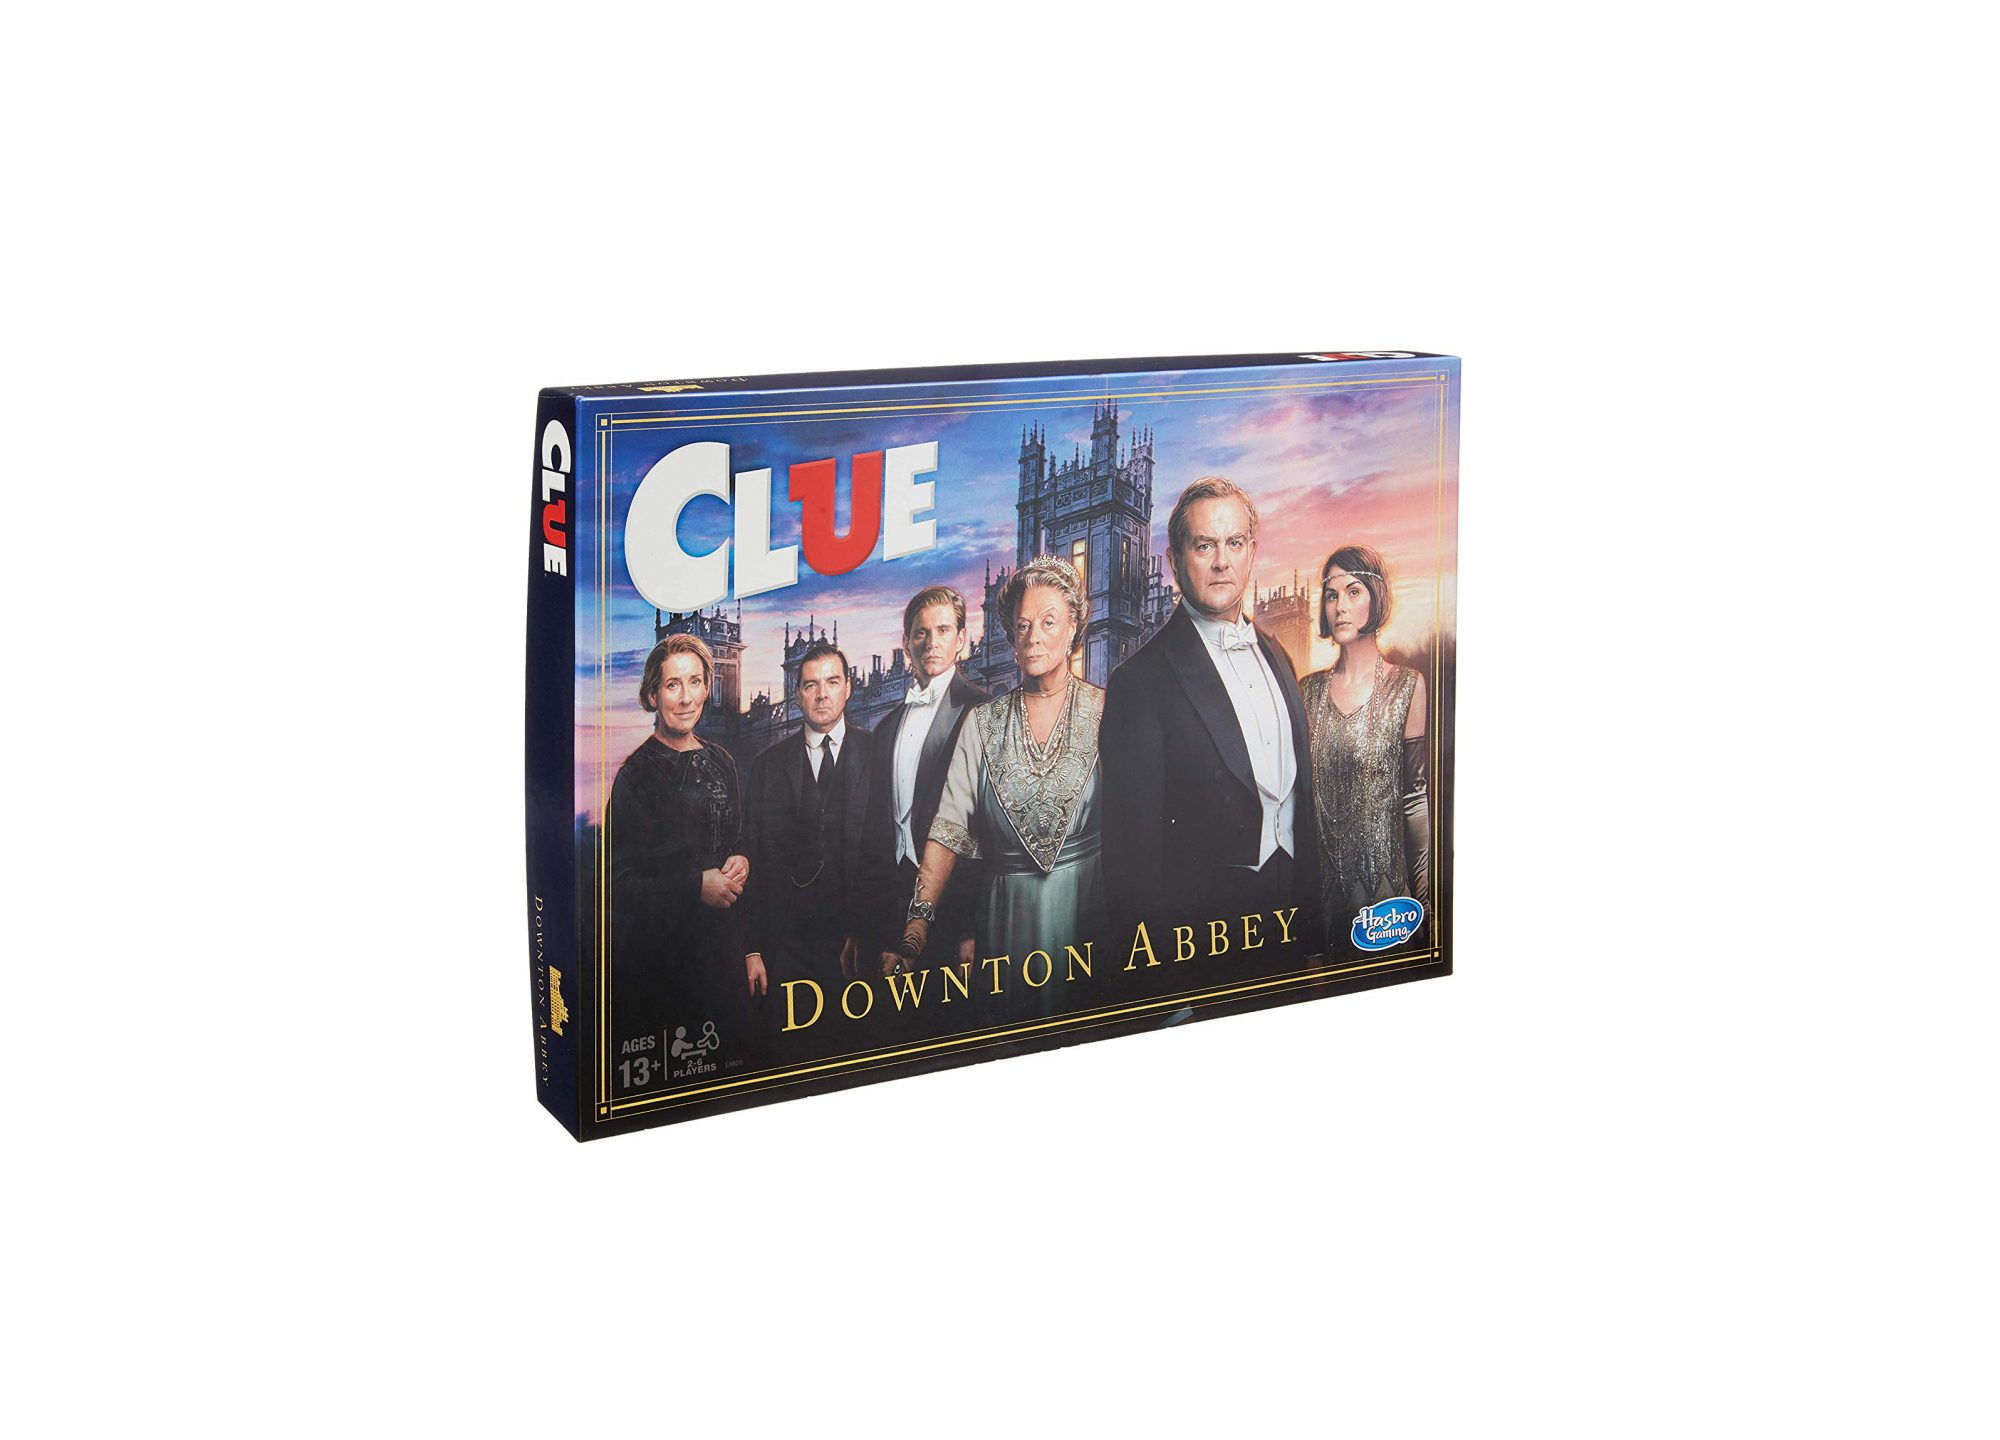 Downton Abbey Clue Board Game